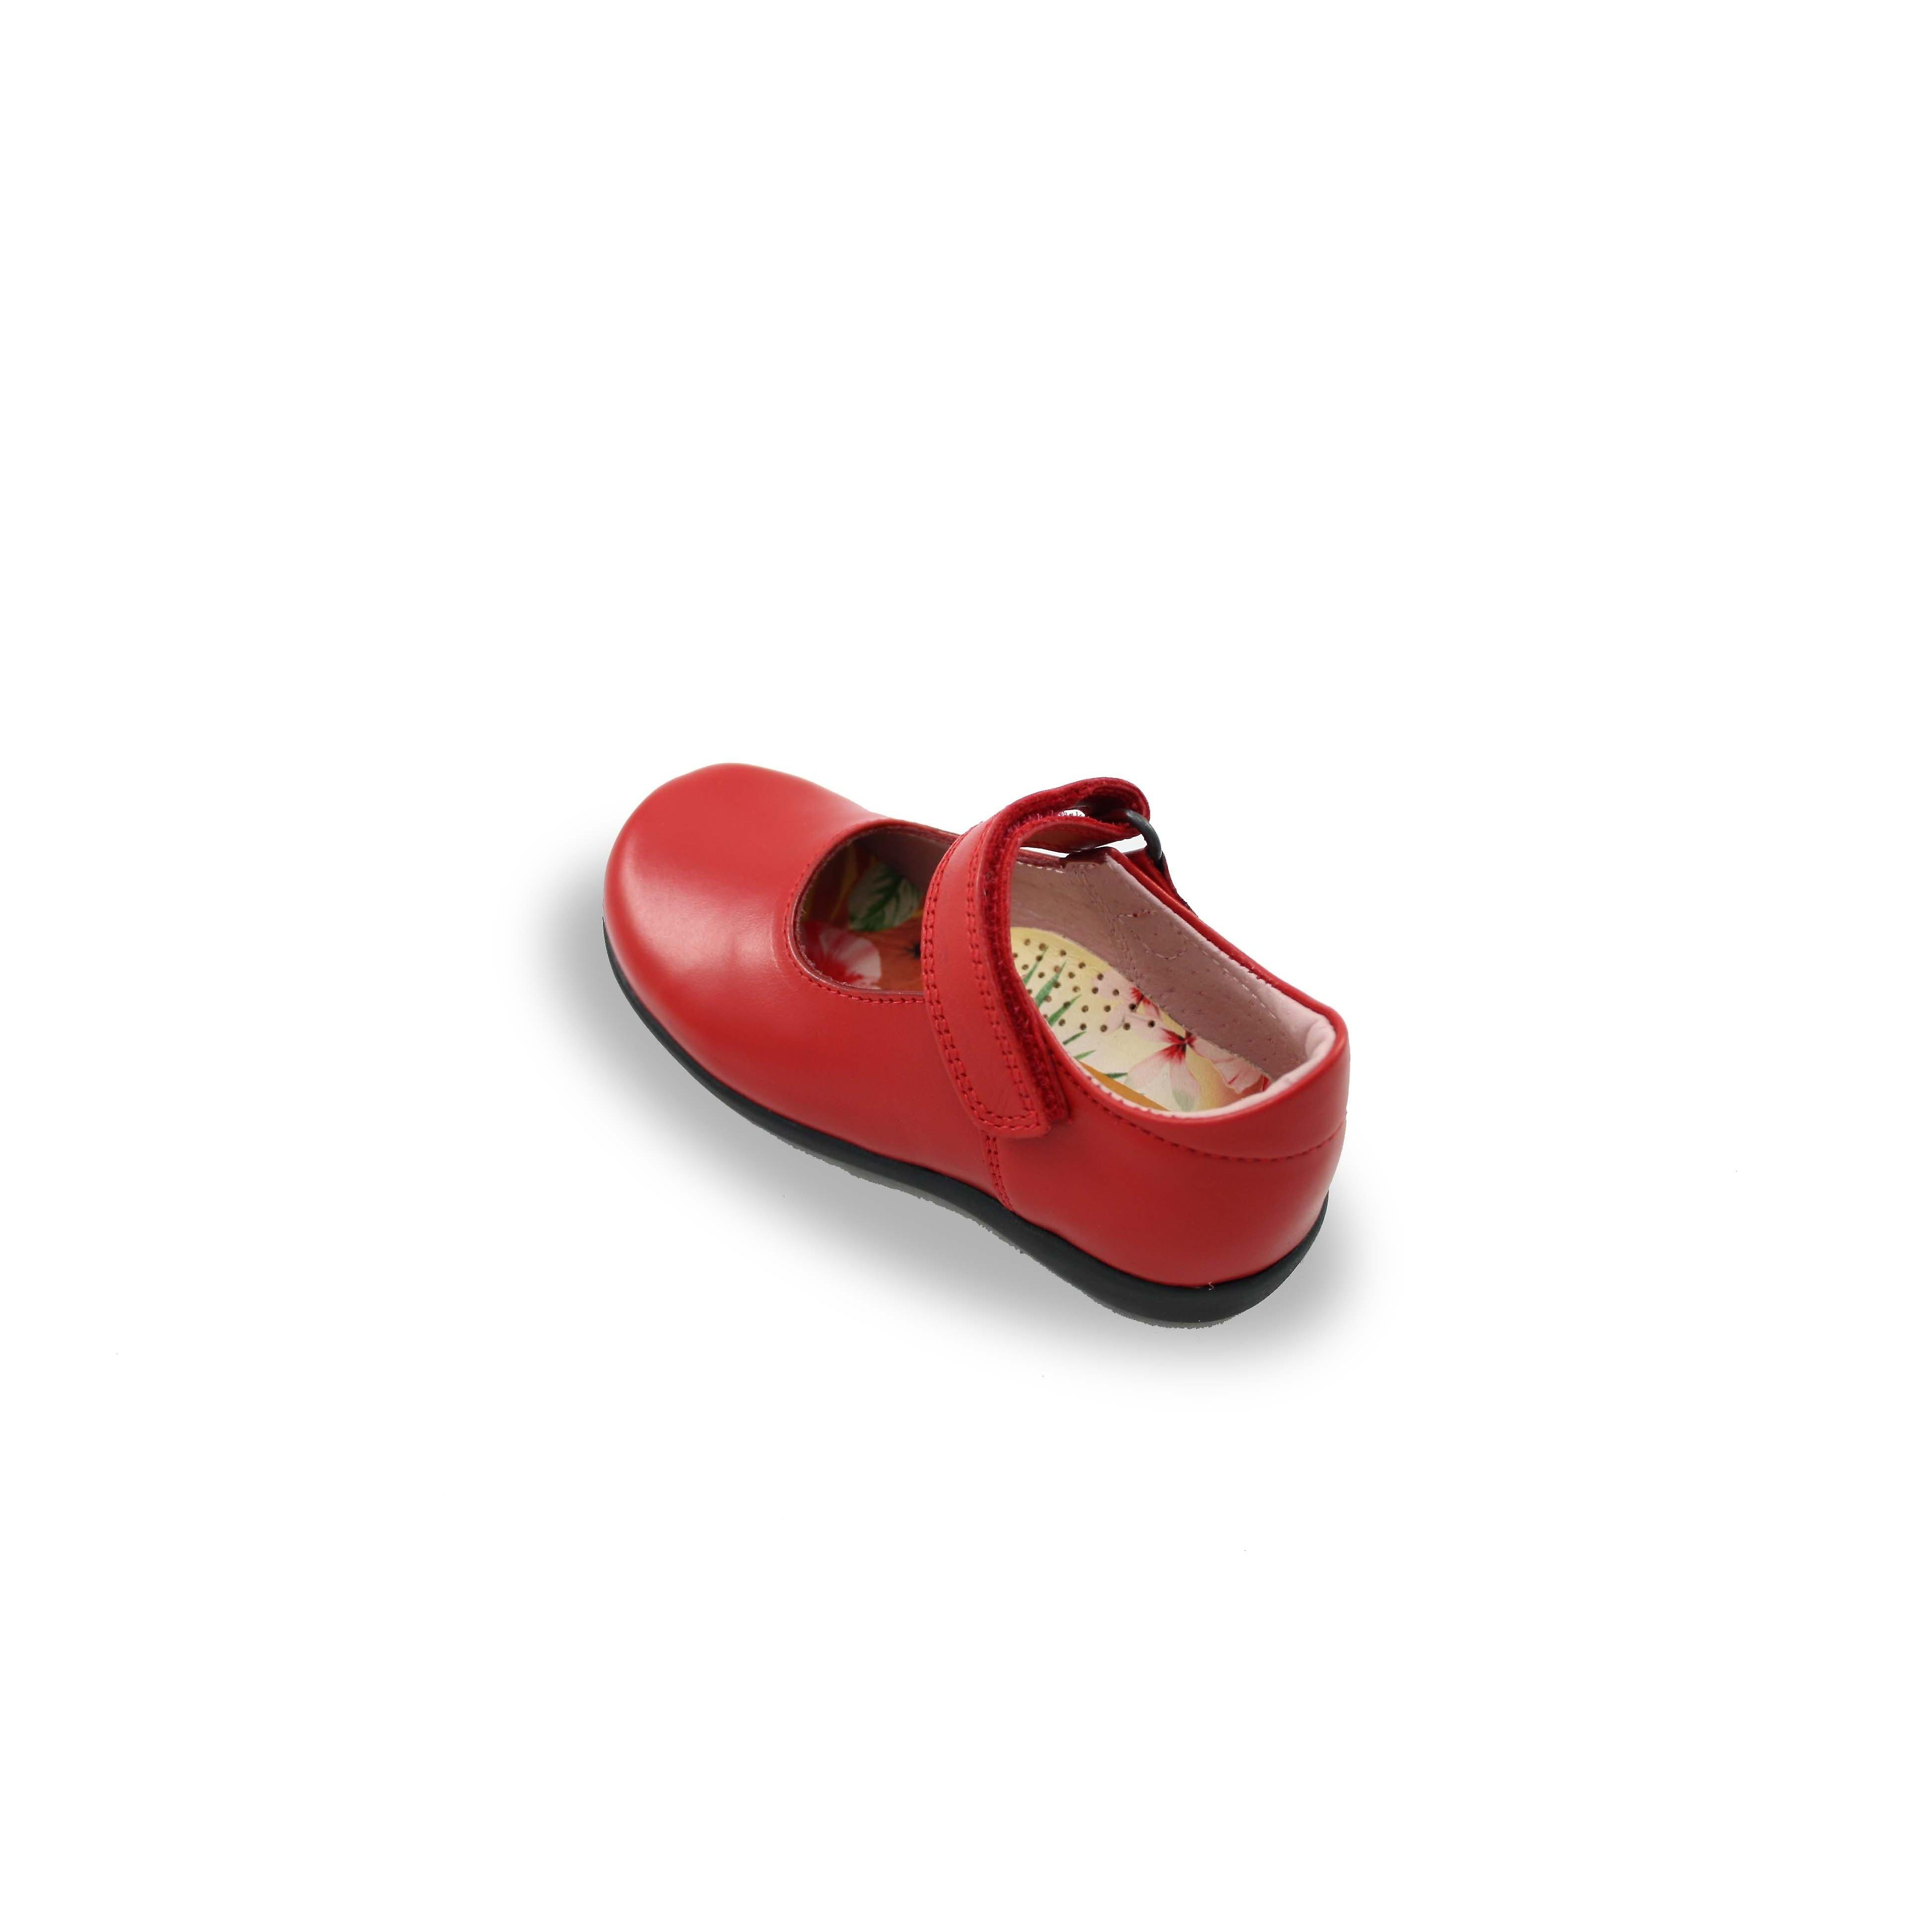 Petasil Bea Classic Red Mary-janes Shoes